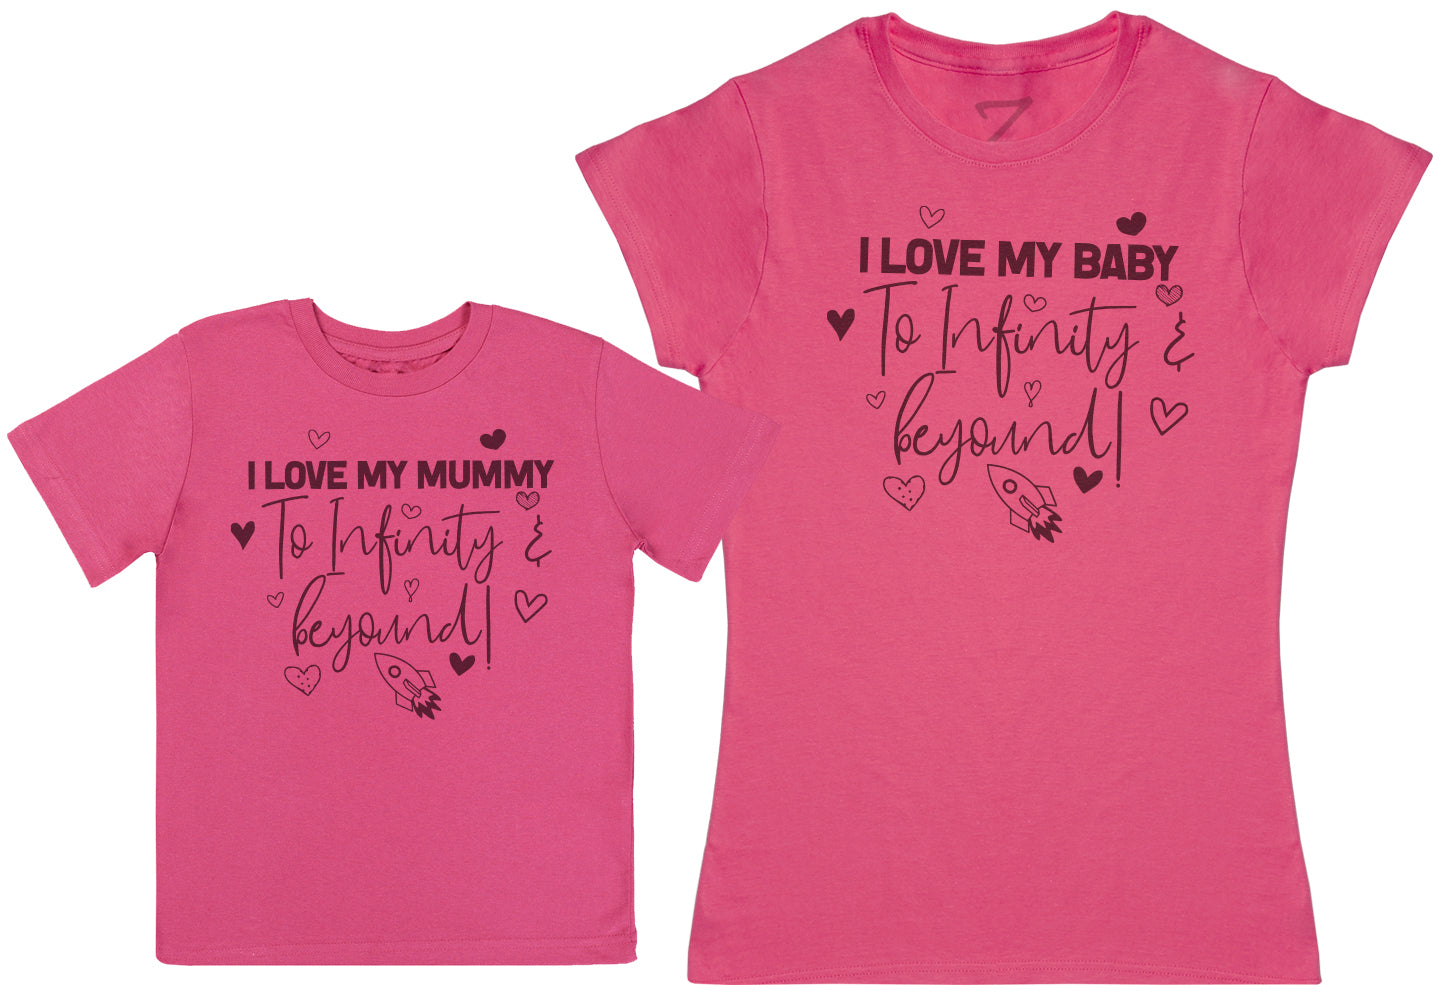 I Love My Mummy & Baby To Infinity & Beyond - Kid's Gift Set with Kid's T-Shirt & Mother's T-Shirt